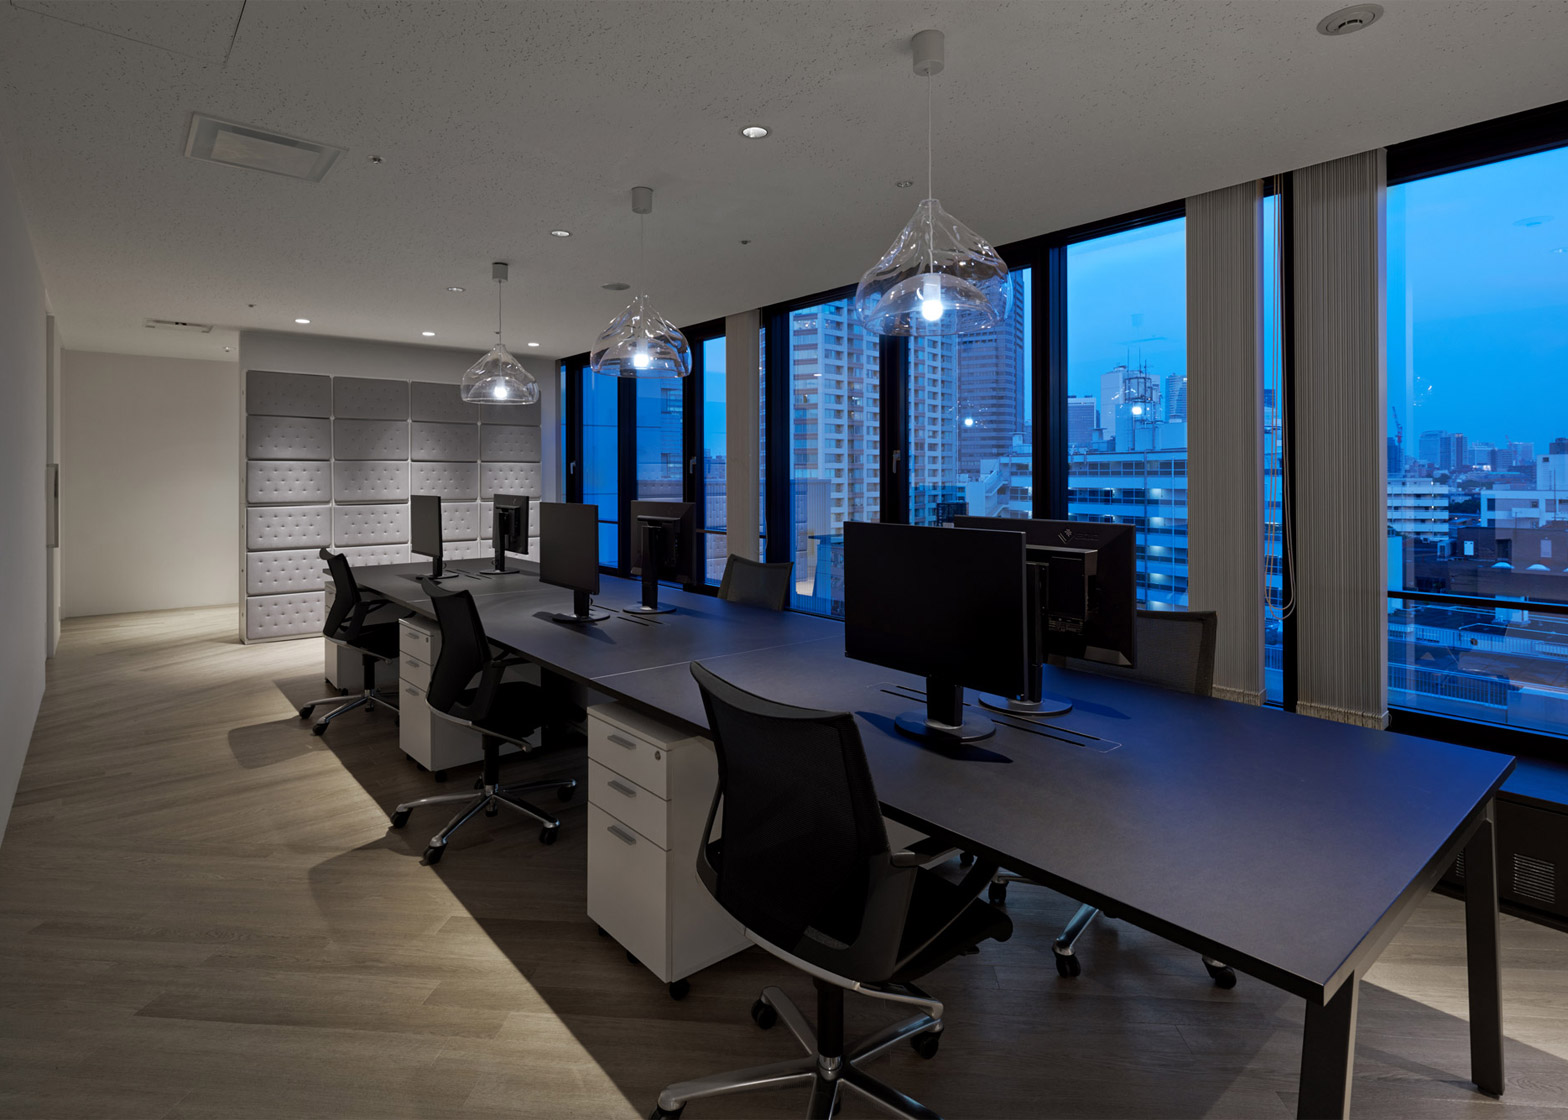 Mirrored office interiors by Nendo